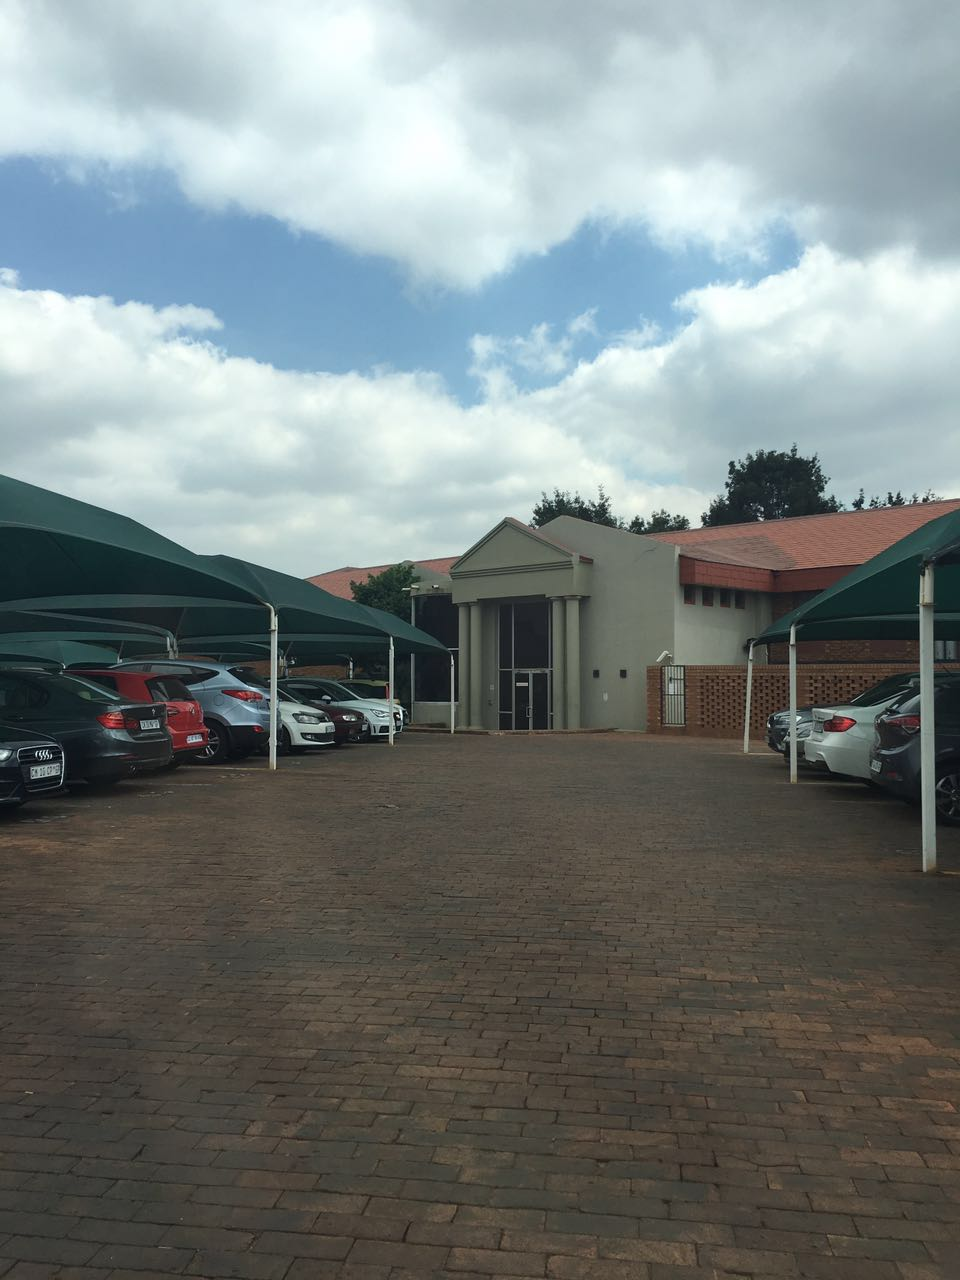 UPMARKET OFFICES TO LET IN THE HEART OF Highveld, CLOSE TO THE GAUTRAIN Station!! 6 MONTH RENT FREE !!!